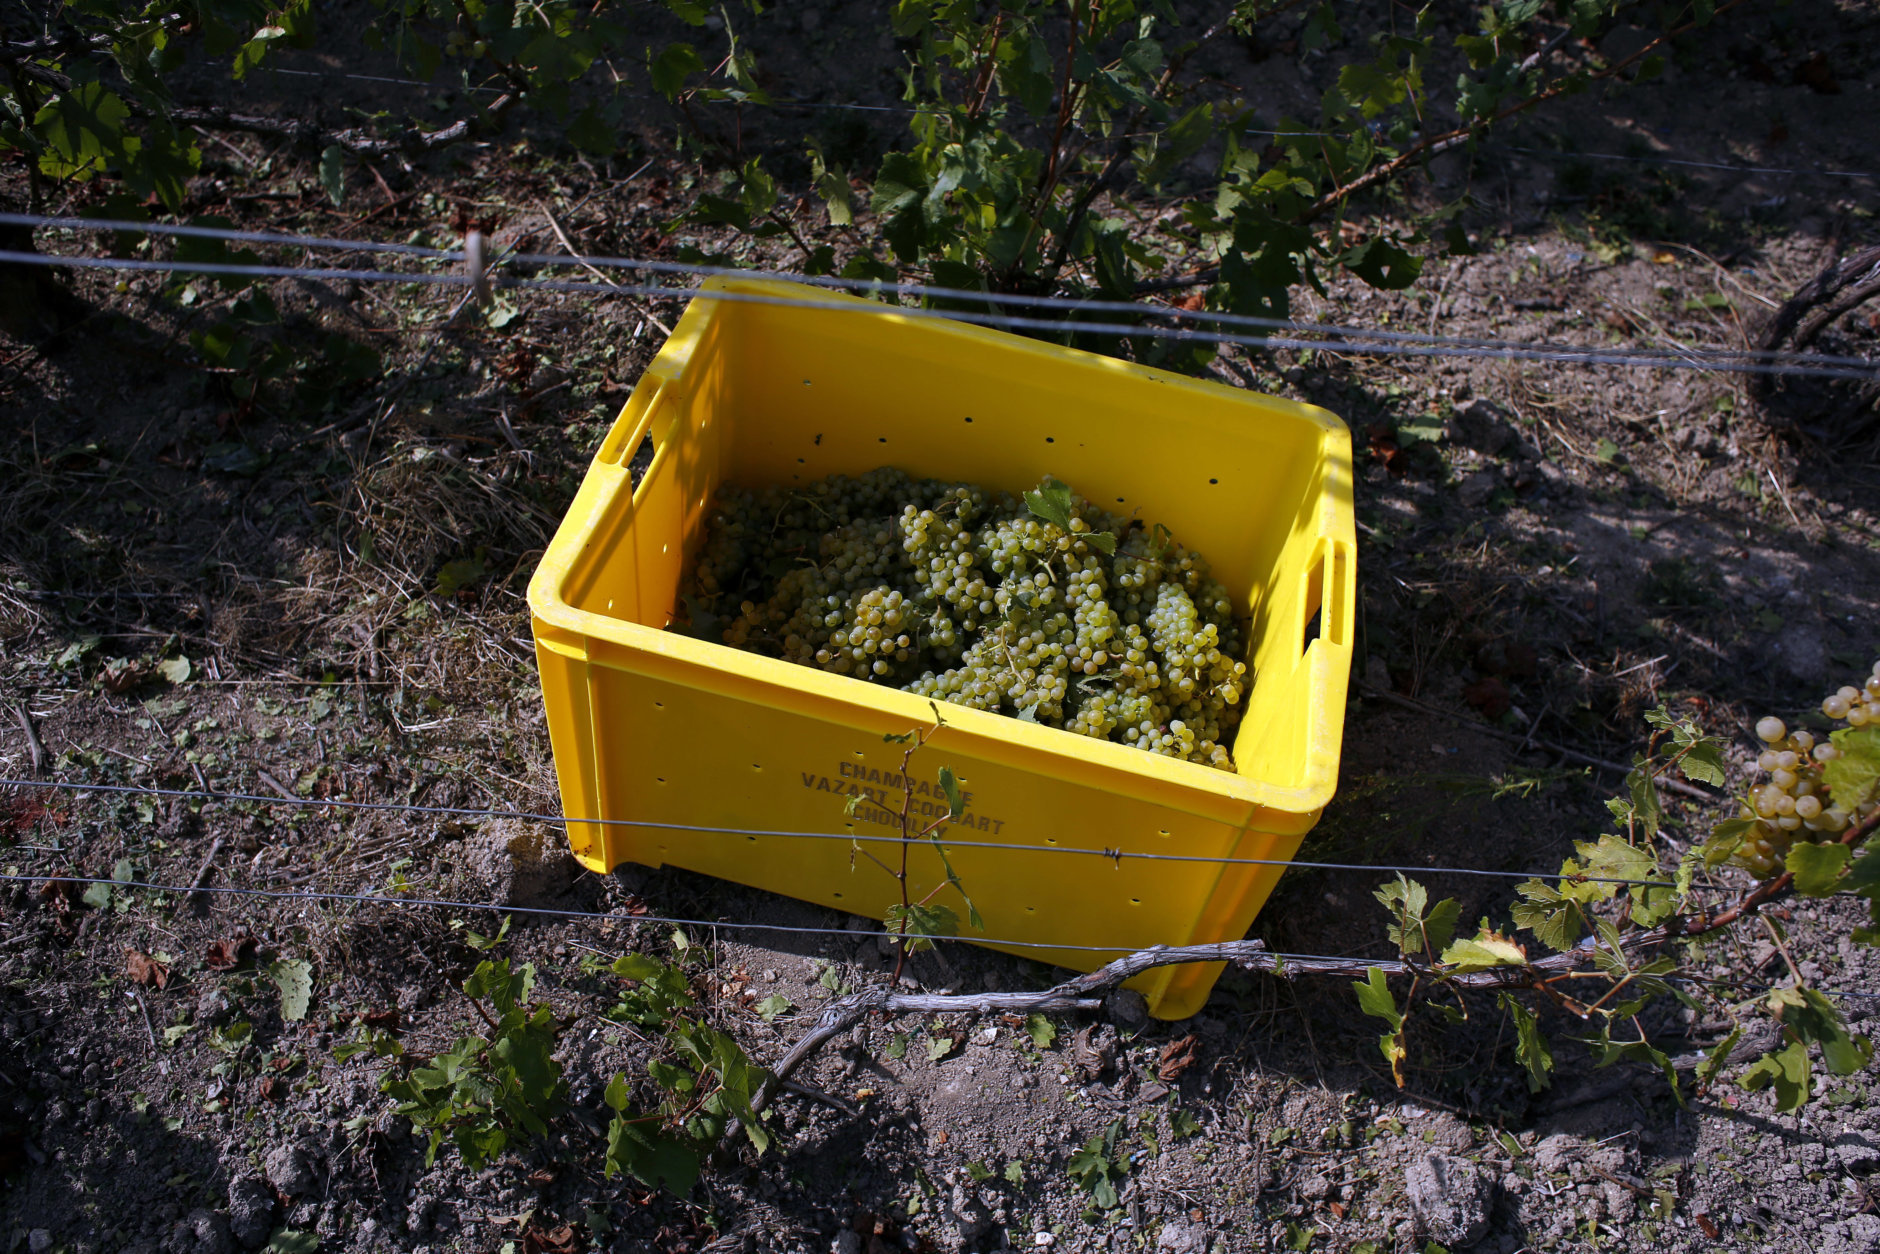 In this photo taken on Tuesday, Aug. 28, 2018 a box containing grapes on the ground among vineyards during the grape harvest season, in the Champagne region, in Chouilly, eastern France. Temperatures have risen 1.2 degrees Celsius (2.16 F) in 30 years, and pickers are scrambling to bring in yet another early harvest. To counter the creeping effects of climate change, including chaotic weather, scientists are experimenting with developing more resistant grape varieties. (AP Photo/Thibault Camus)